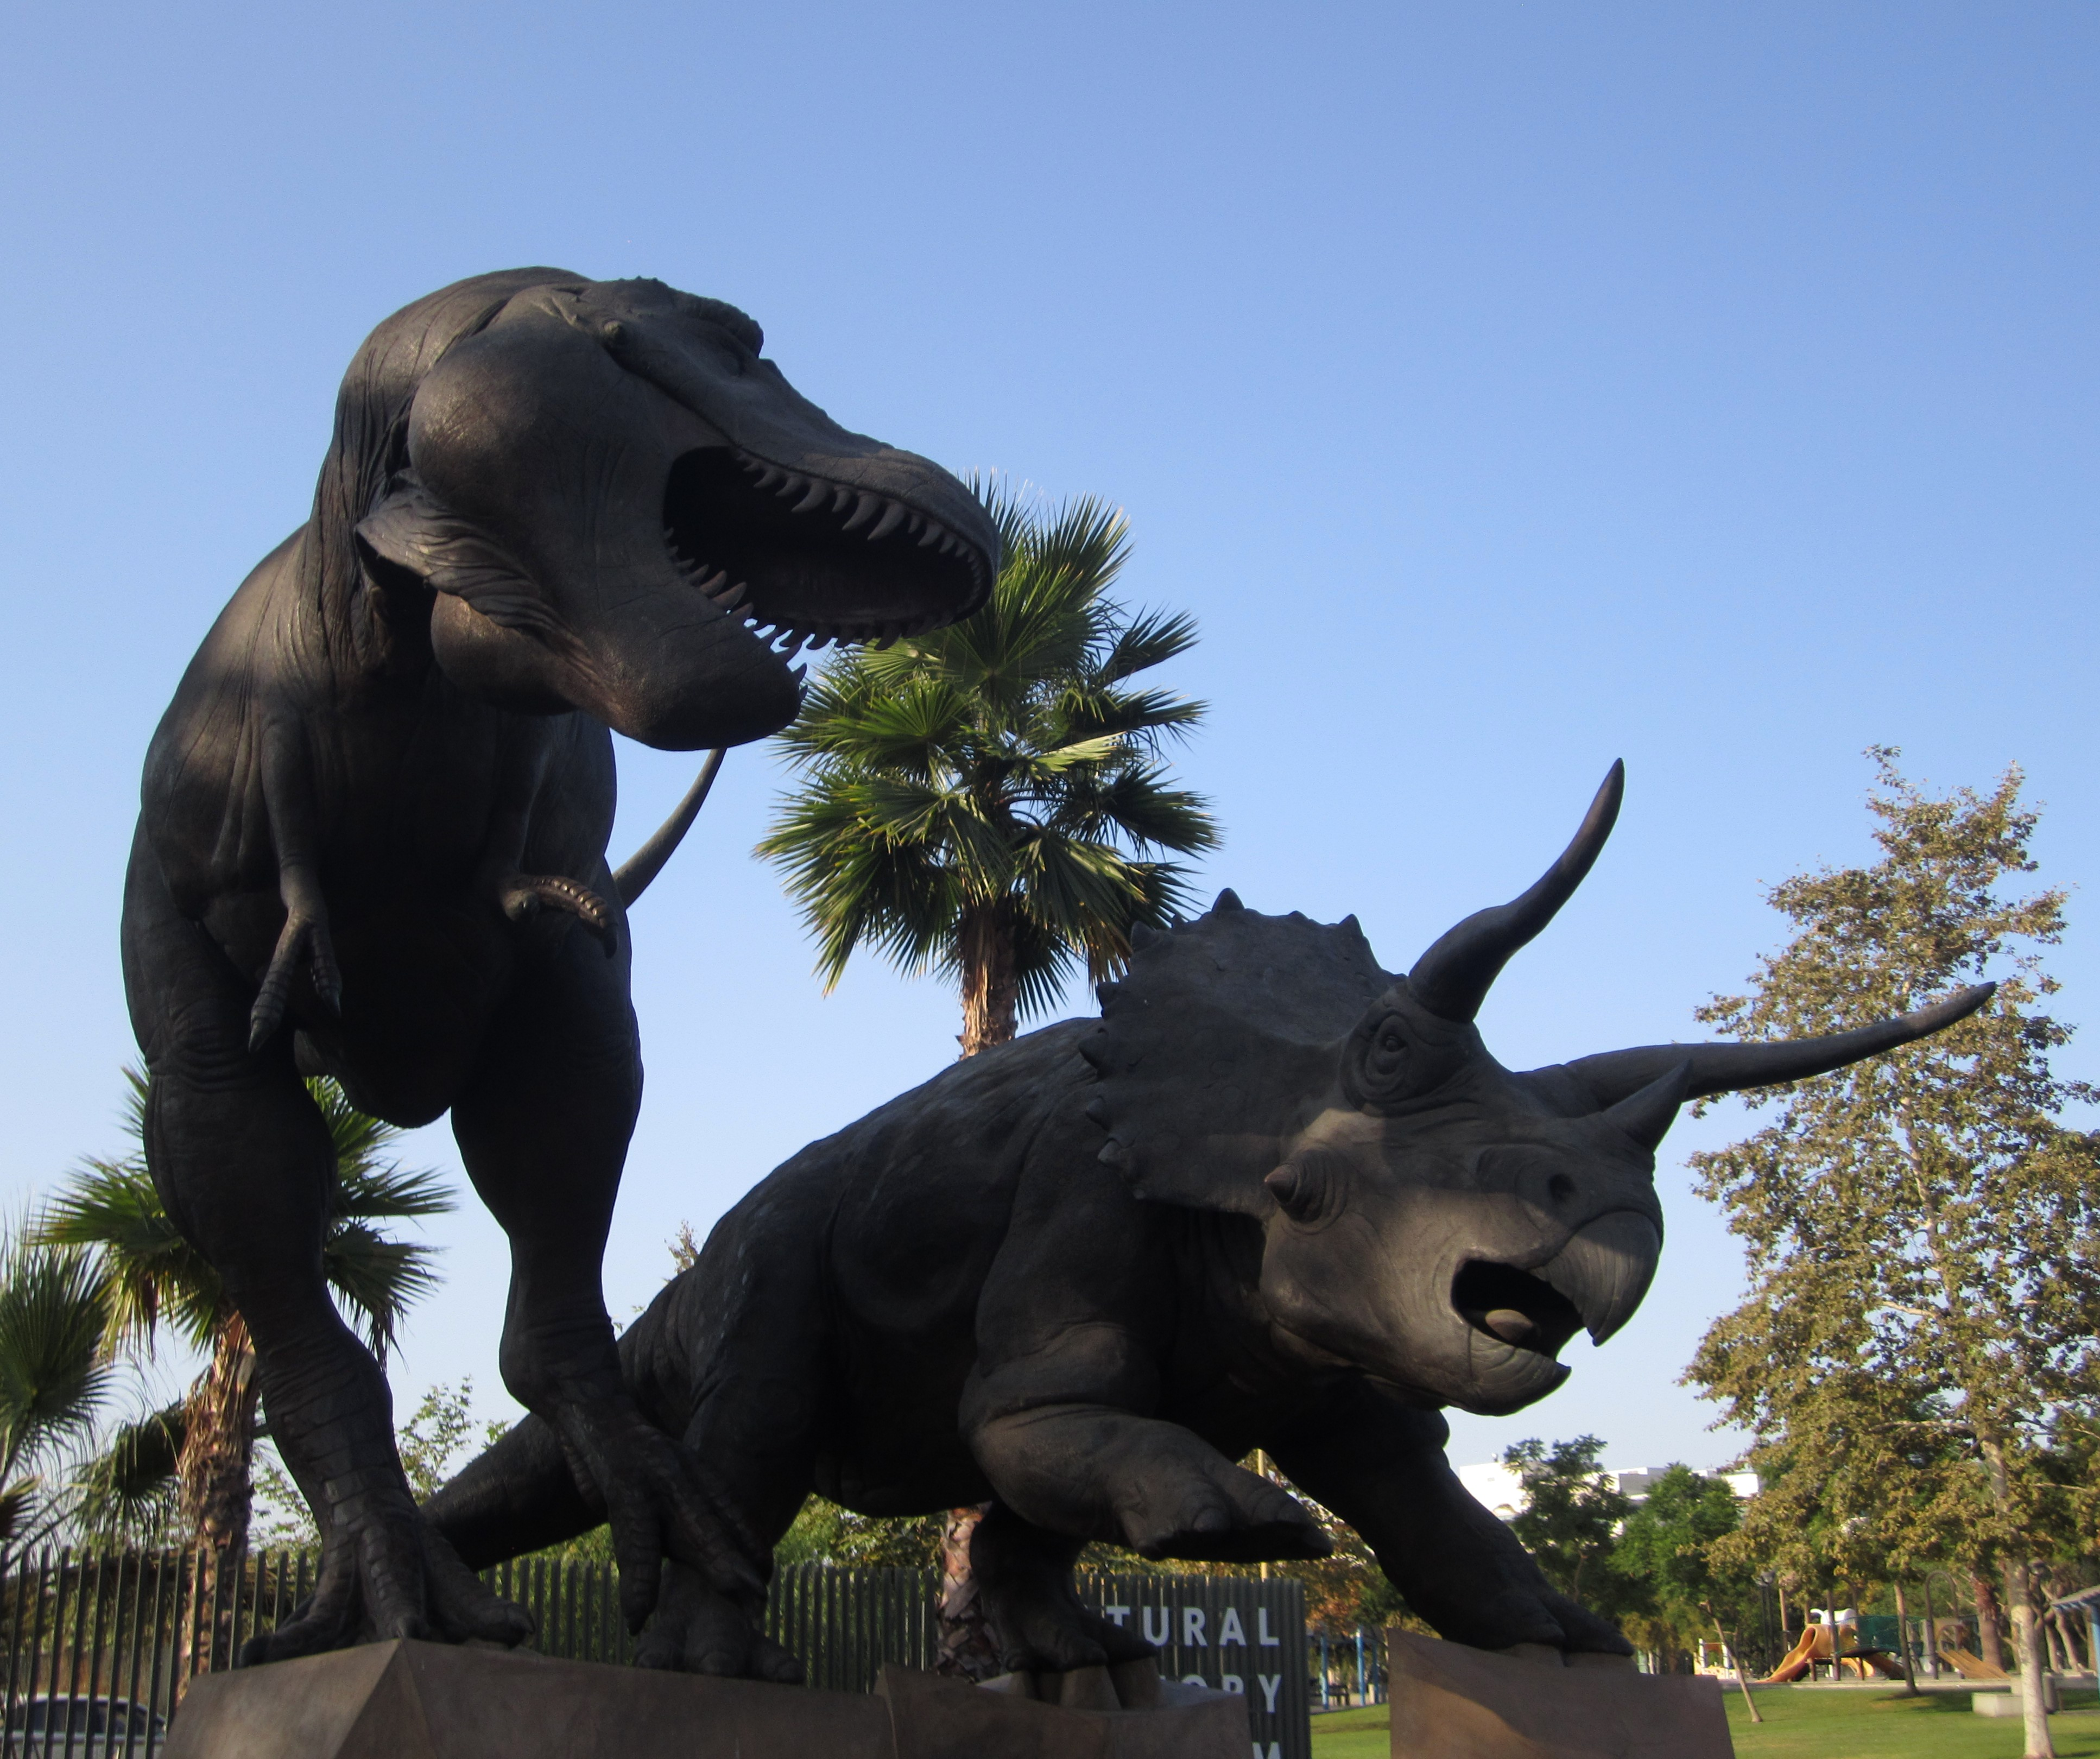 Top 5 Dinosaur Attractions in Southern California